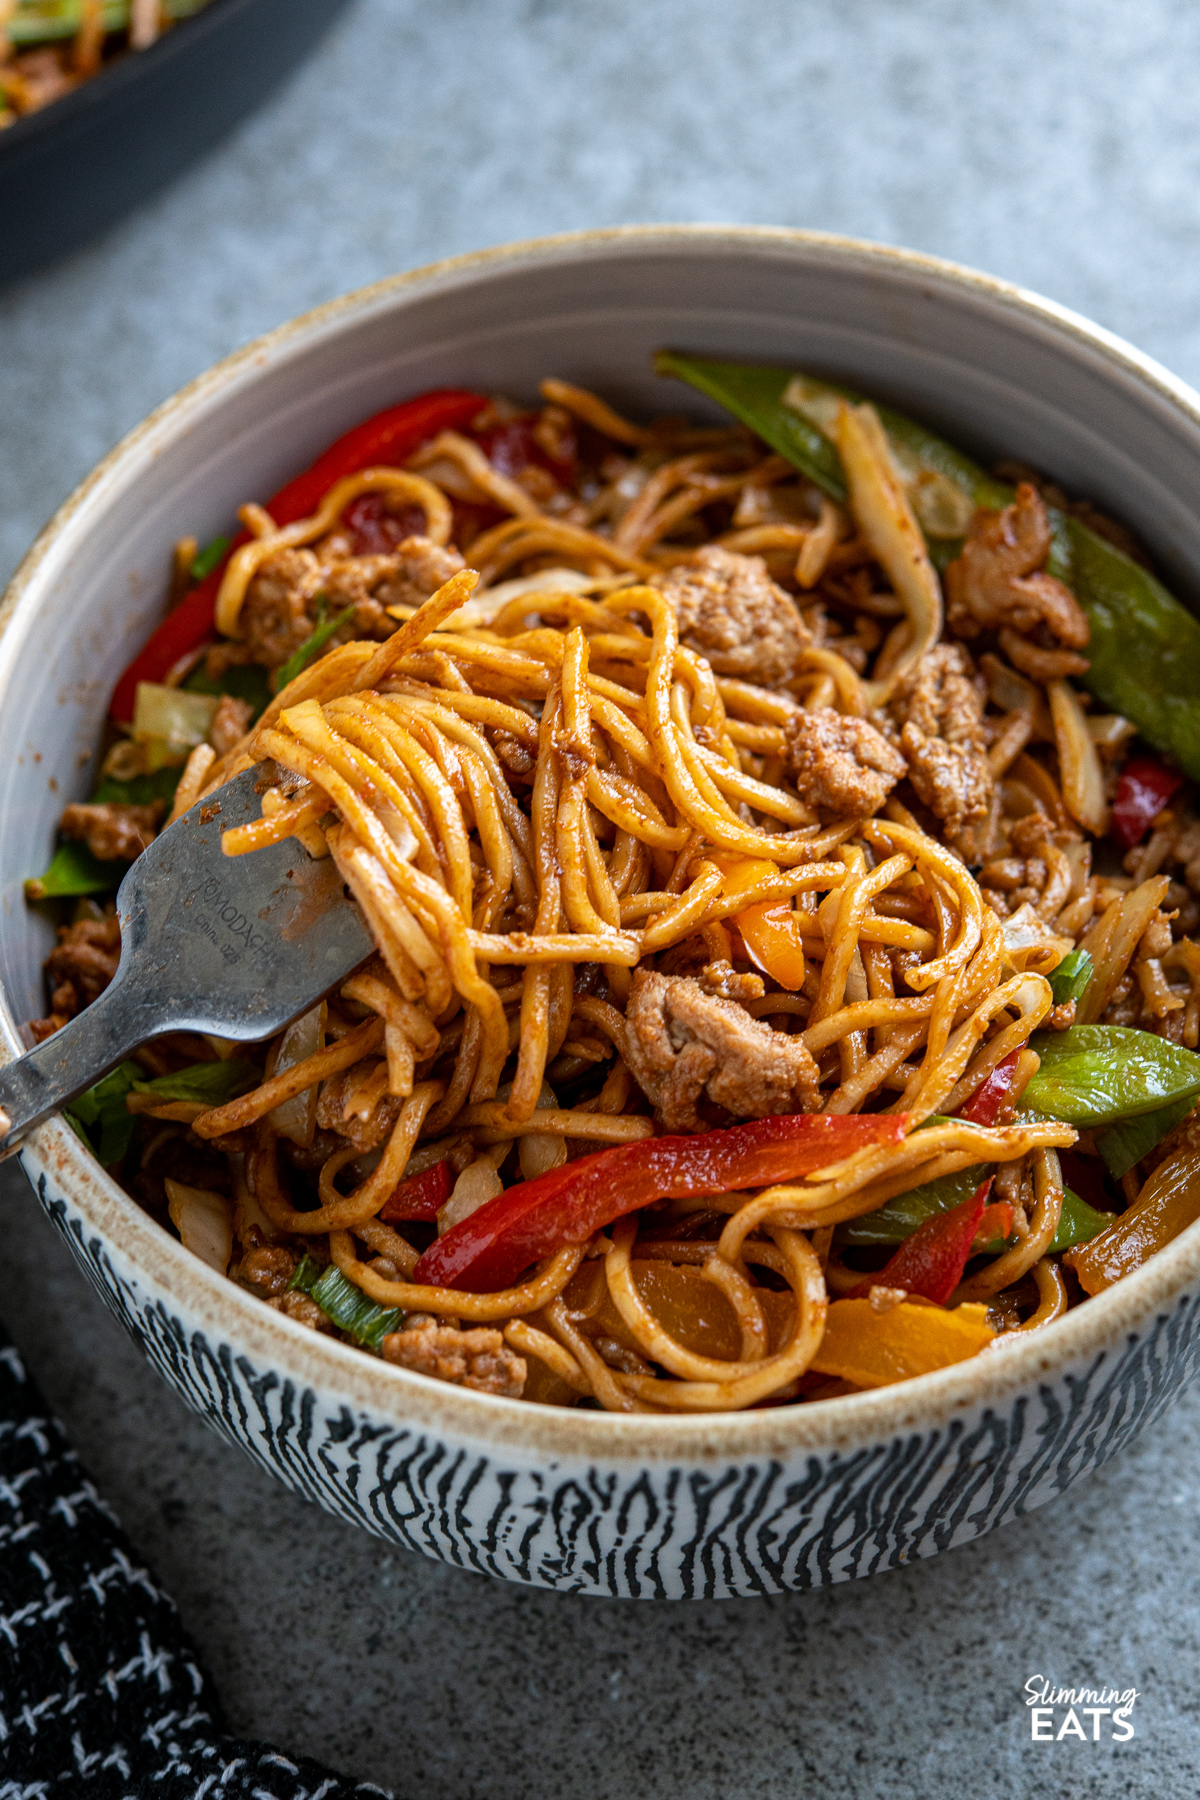 fork twisting noodles with hoisin pork and veggies from a grey bowl